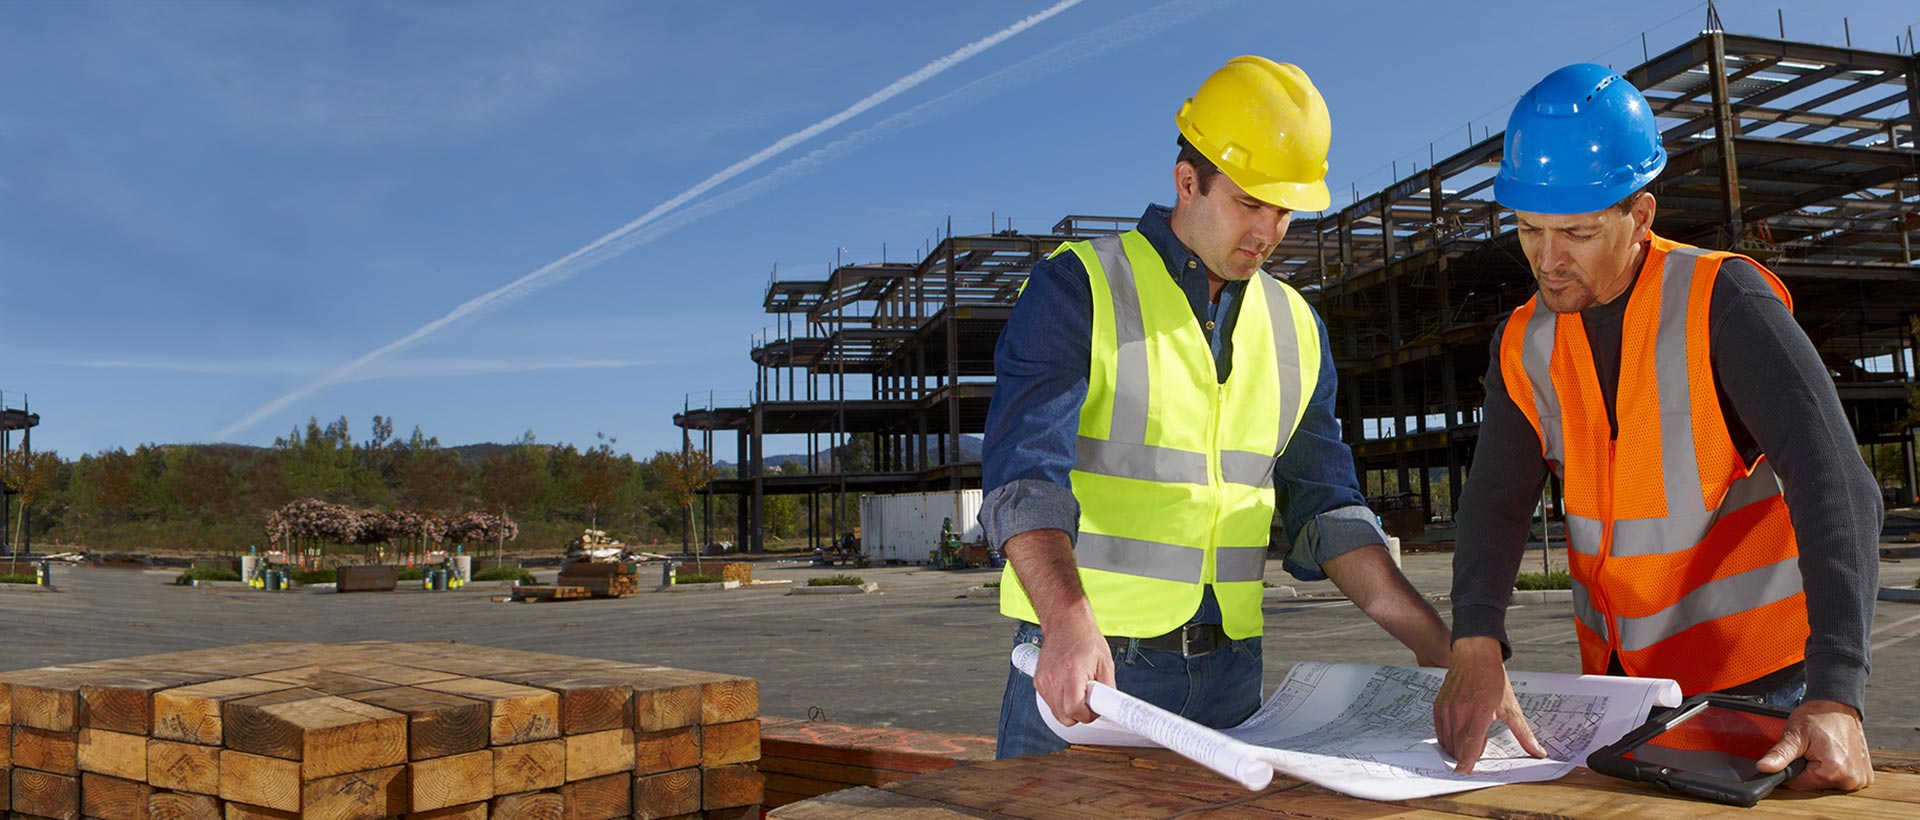 ExakTime - Construction Time & Attendance Solutions